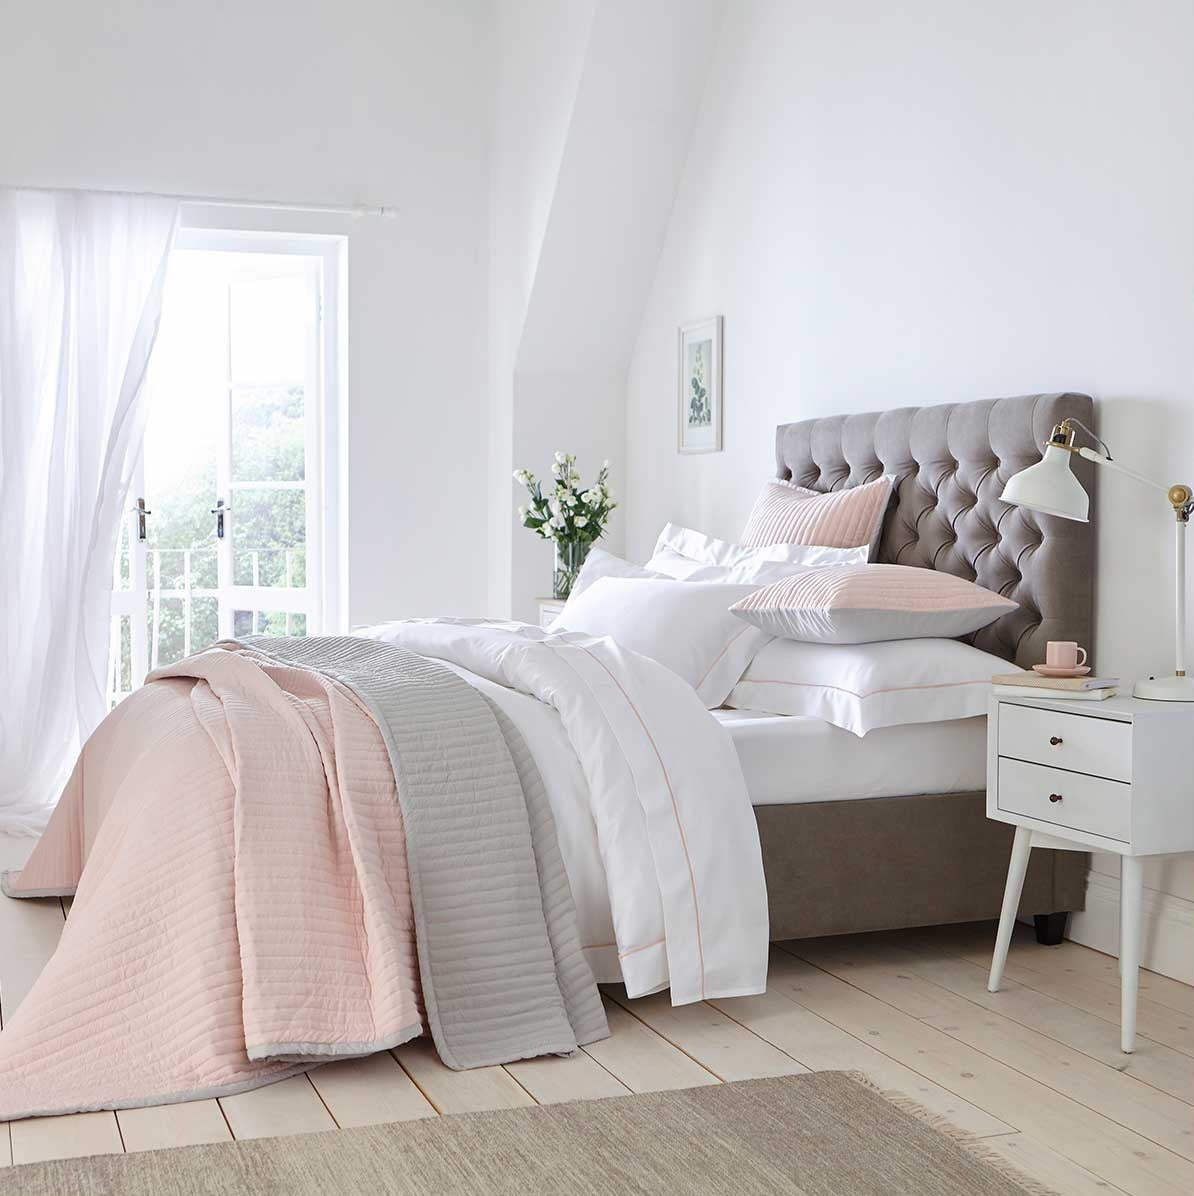 Design Spotlight: Pink and Grey Rooms